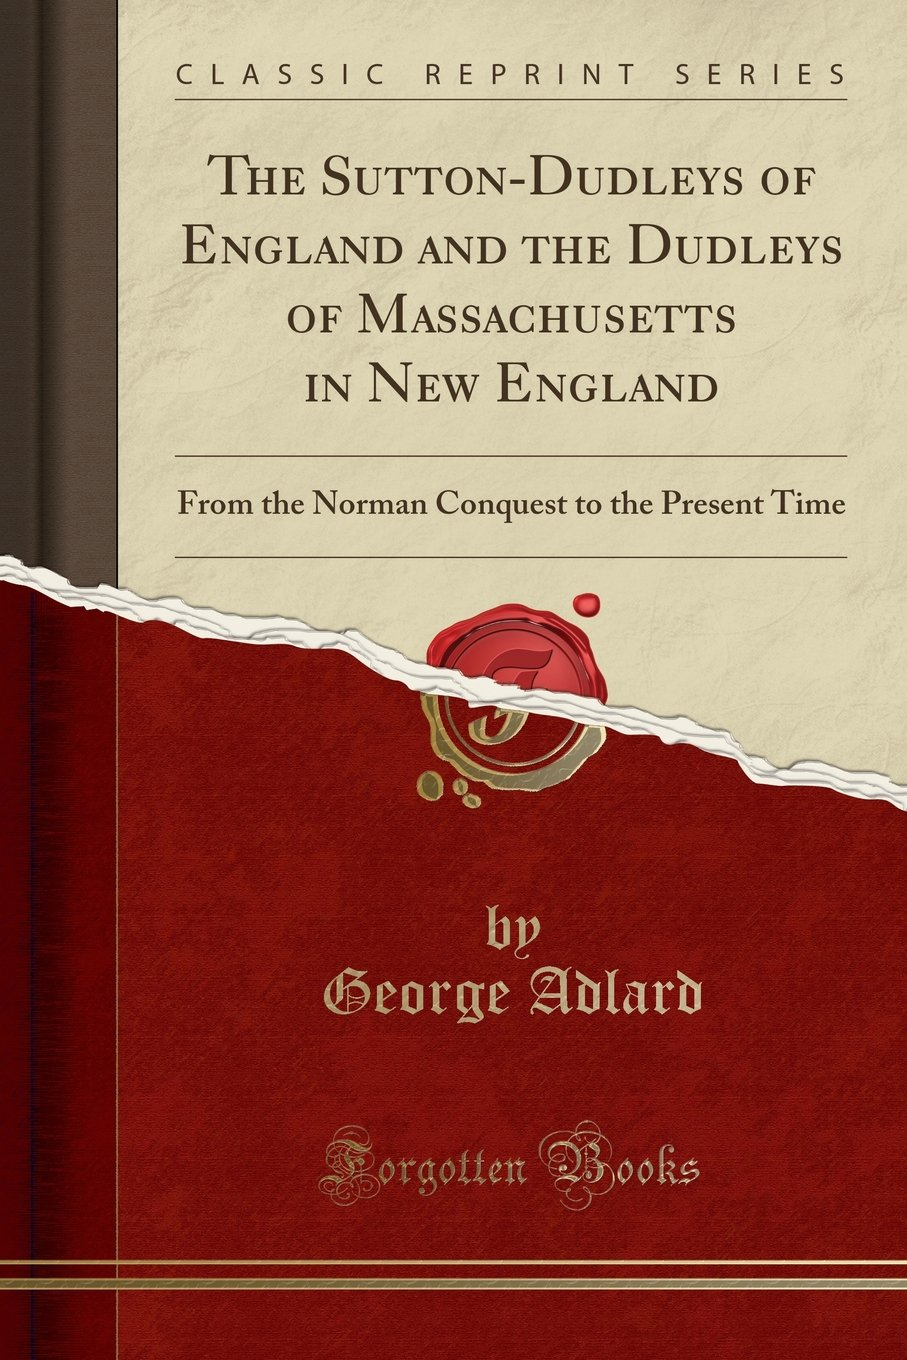 Download The Sutton-Dudleys of England and the Dudleys of Massachusetts in New England: From the Norman Conquest to the Present Time (Classic Reprint) PDF